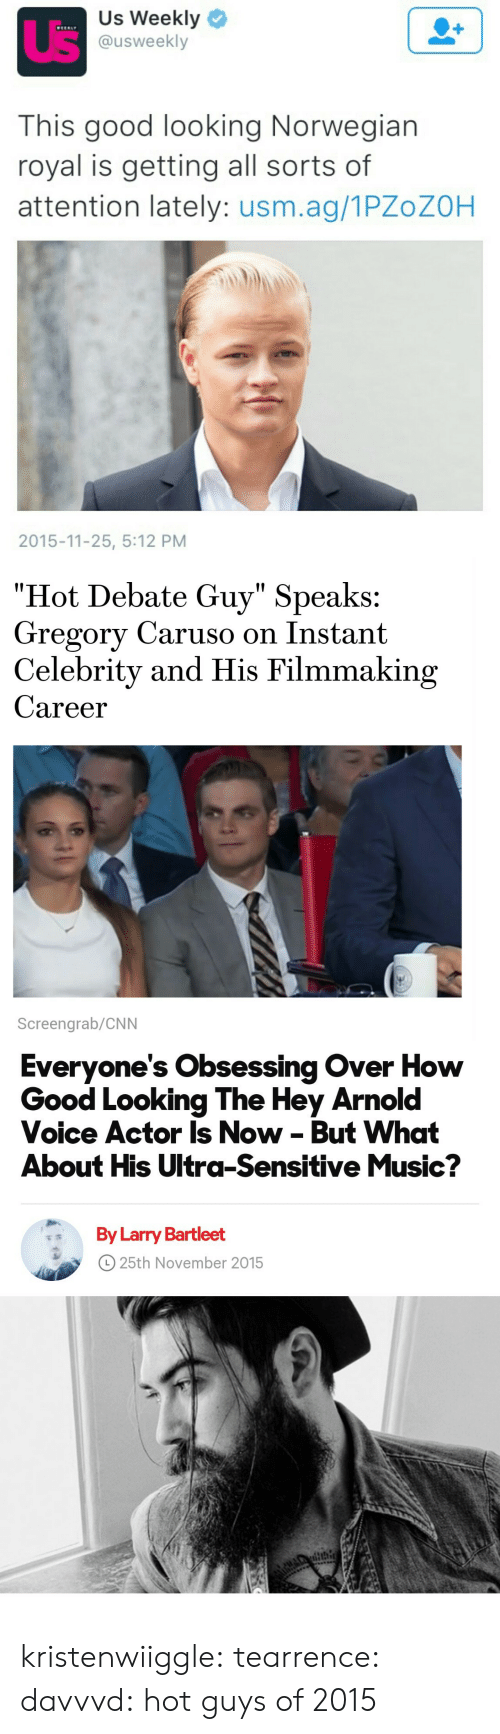 """Filmmaking: Us Weekly  @usweekly  This good looking Norwegian  royal is getting all sorts of  attention lately: usm.ag/1PZoZOH  2015-11-25, 5:12 PM   """"Hot Debate Guy"""" Speaks:  Gregory Caruso on Instant  Celebrity and His Filmmaking  Career  Screengrab/CNN   Everyone's Obsessing Over How  Good Looking The Hey Arnol  Voice Actor Is Now - But What  About His Ultra-Sensitive Music?  By Larry Bartleet  o 25th November 2015 kristenwiiggle:  tearrence:  davvvd:  hot guys of 2015"""